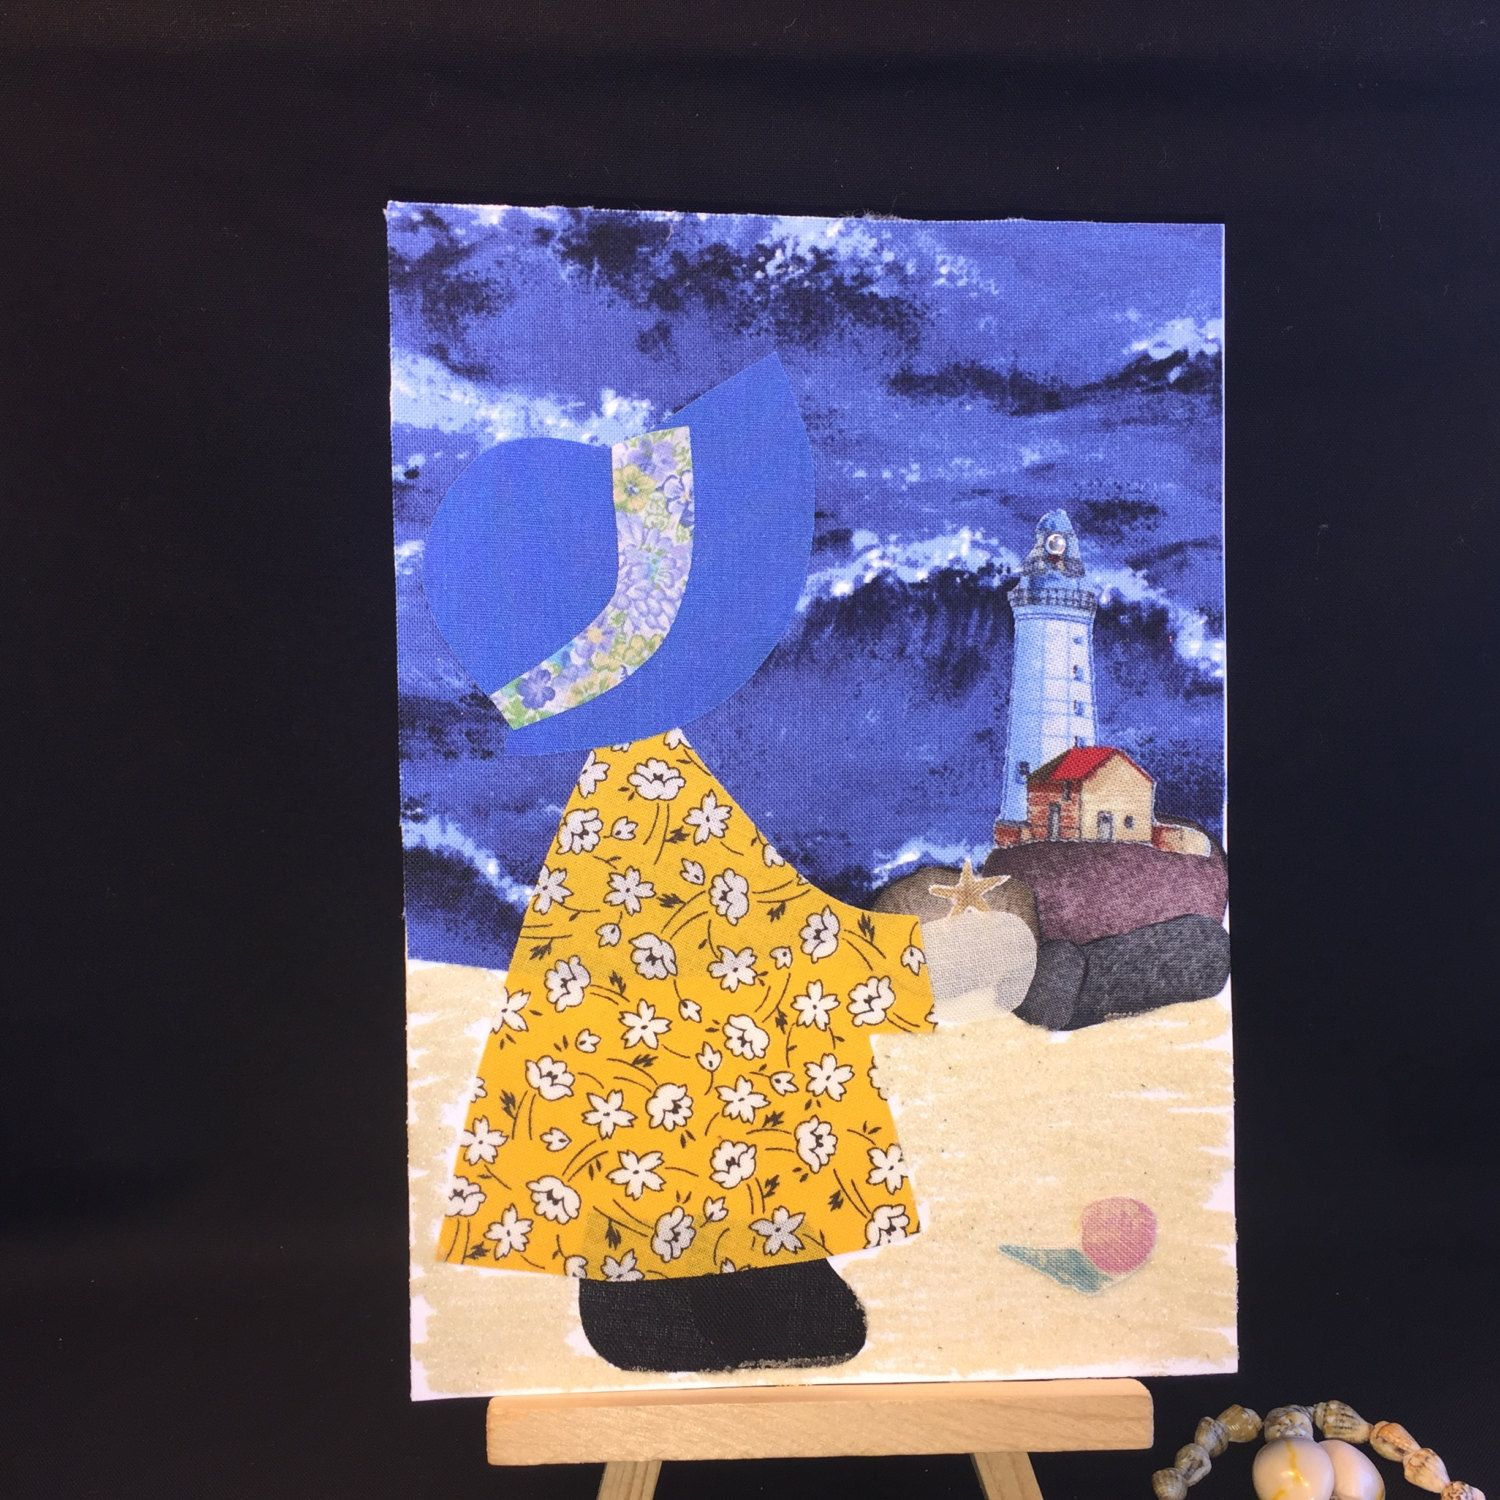 Ooak lighthouse card handmade recycled fabric greeting card travel ooak lighthouse card handmade recycled fabric greeting card travel card bon voyage card kristyandbryce Choice Image